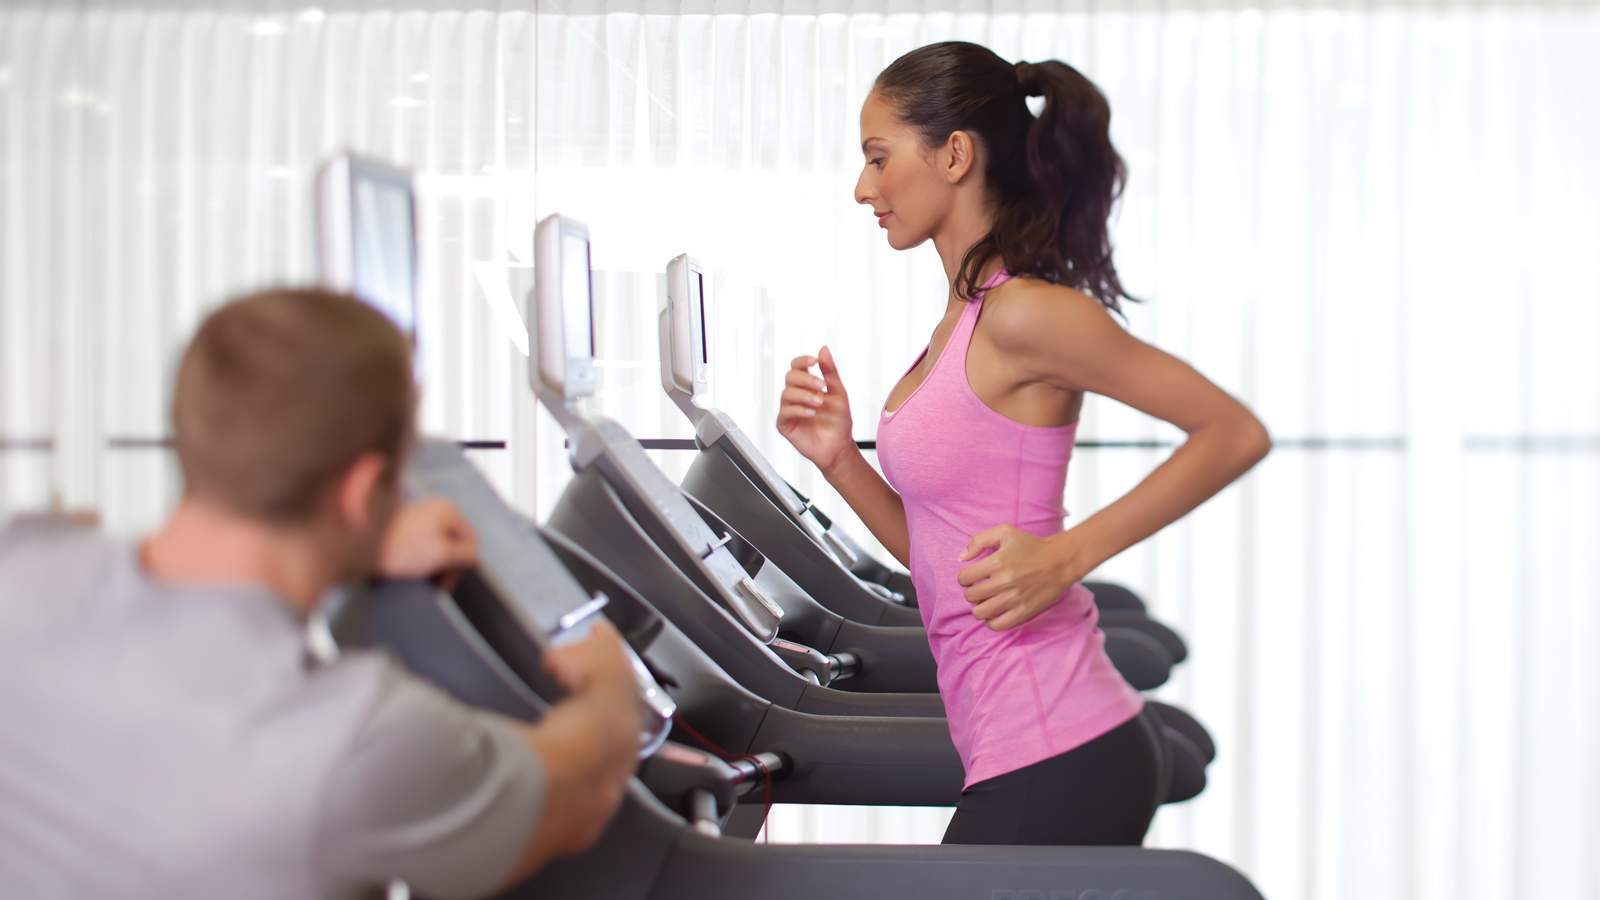 Personal Training Sessions in Westlake Village